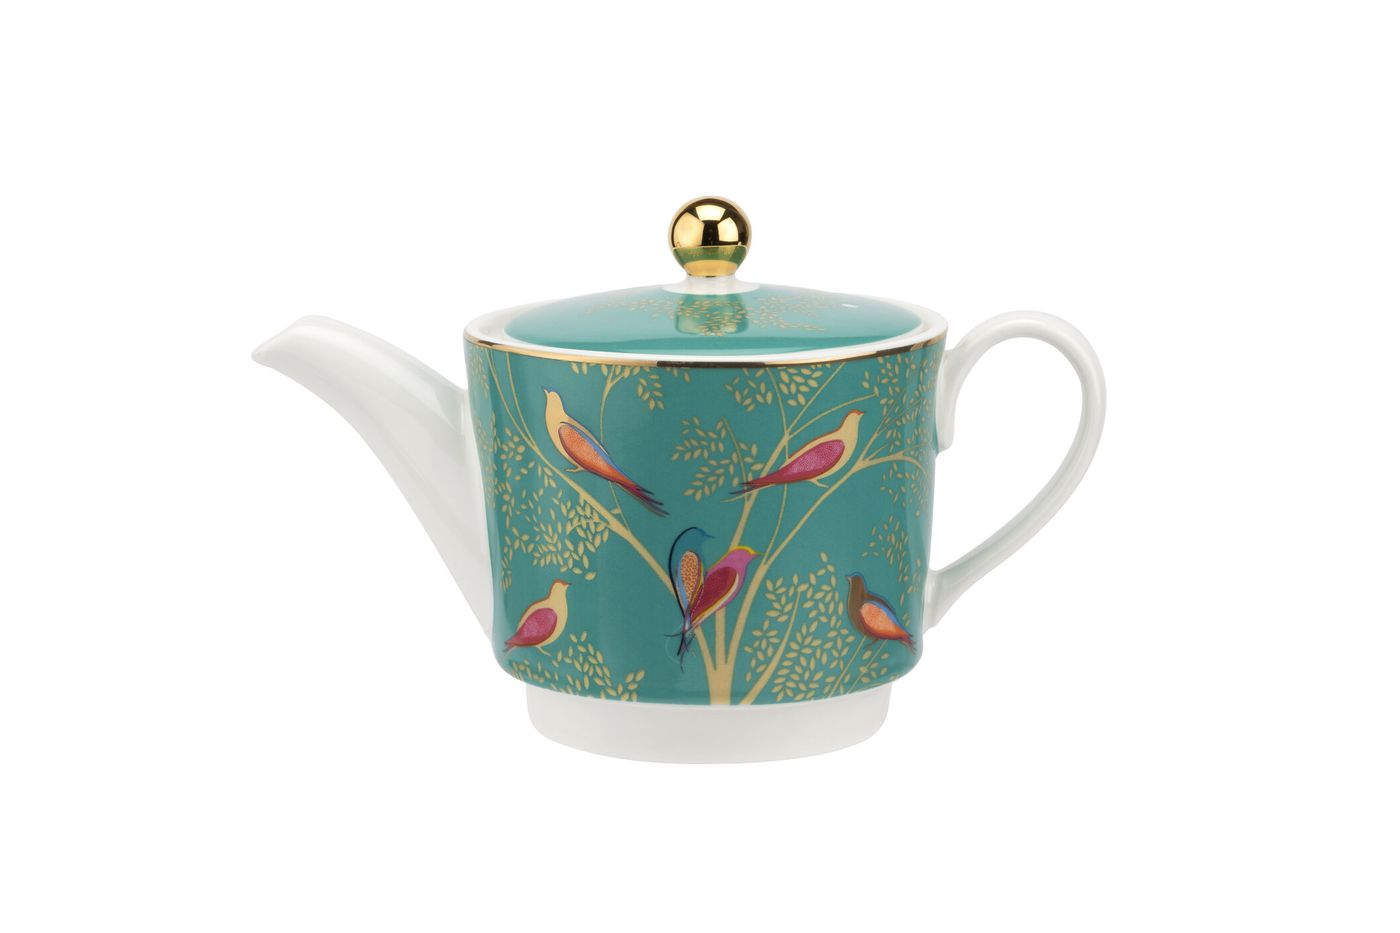 Sara Miller London for Portmeirion Chelsea Collection Tea For One Green 0.35l thumb 4